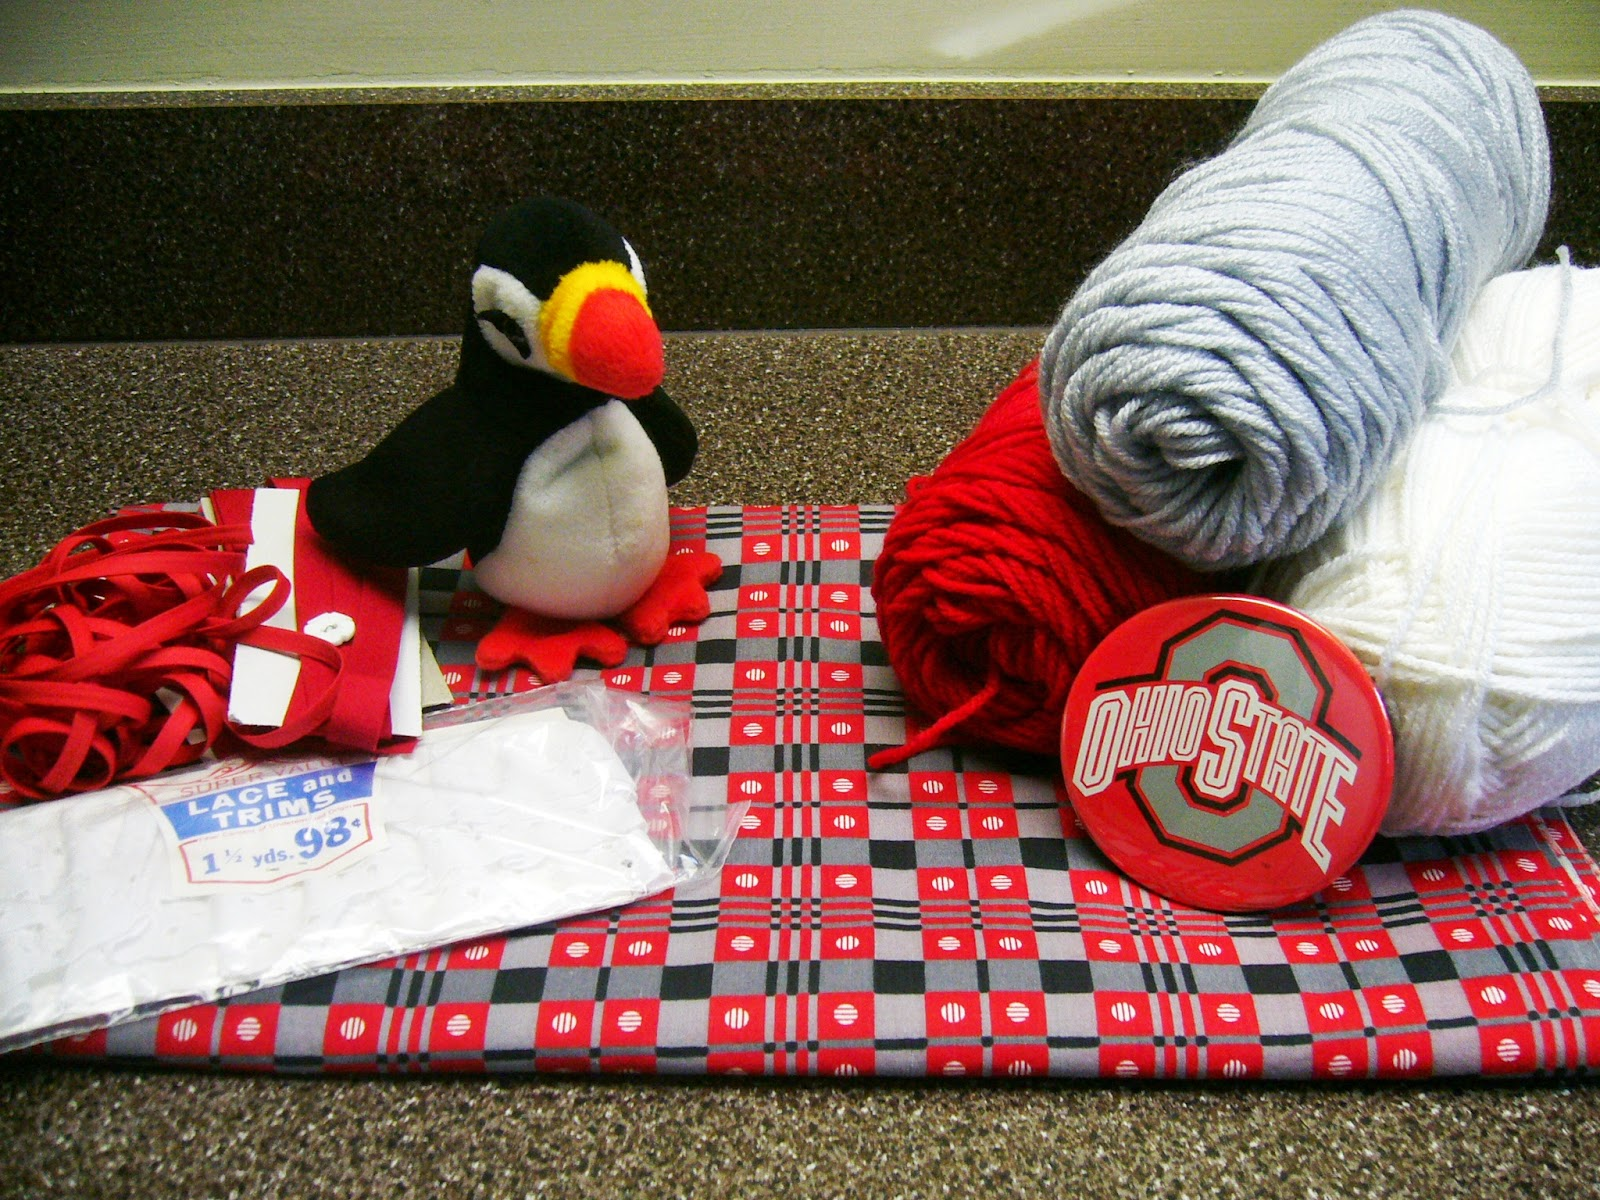 The Ohio State Buckeyes Operation Christmas Child Shoebox Crafting Supplies